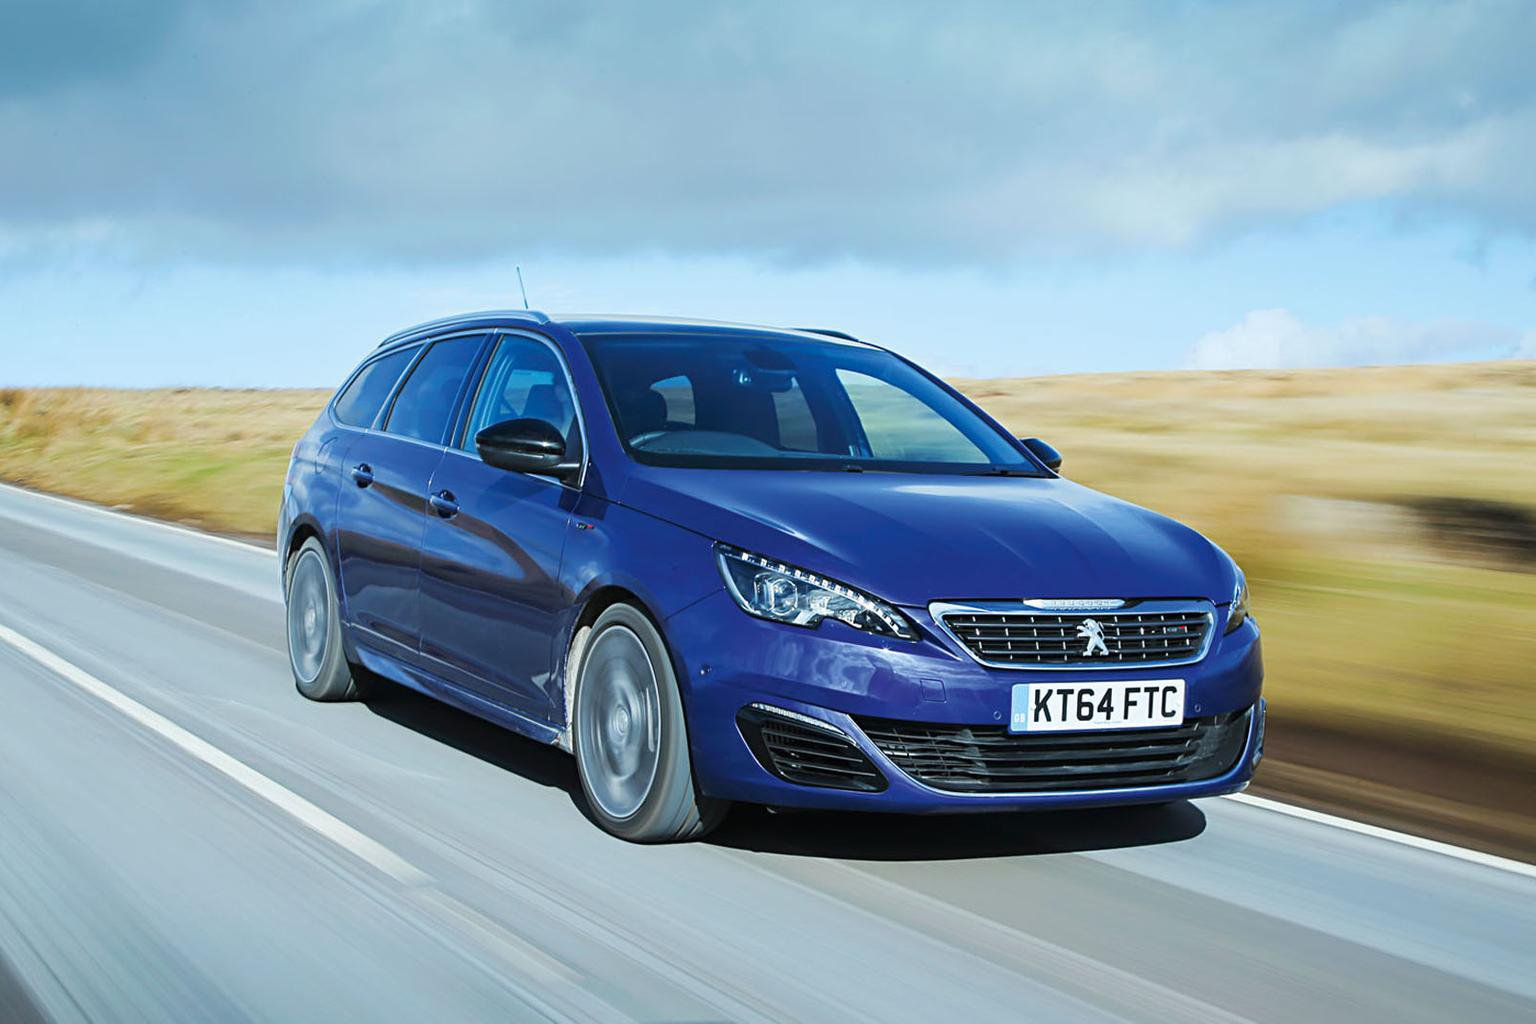 2015 Peugeot 308 SW GT Blue HDi 180